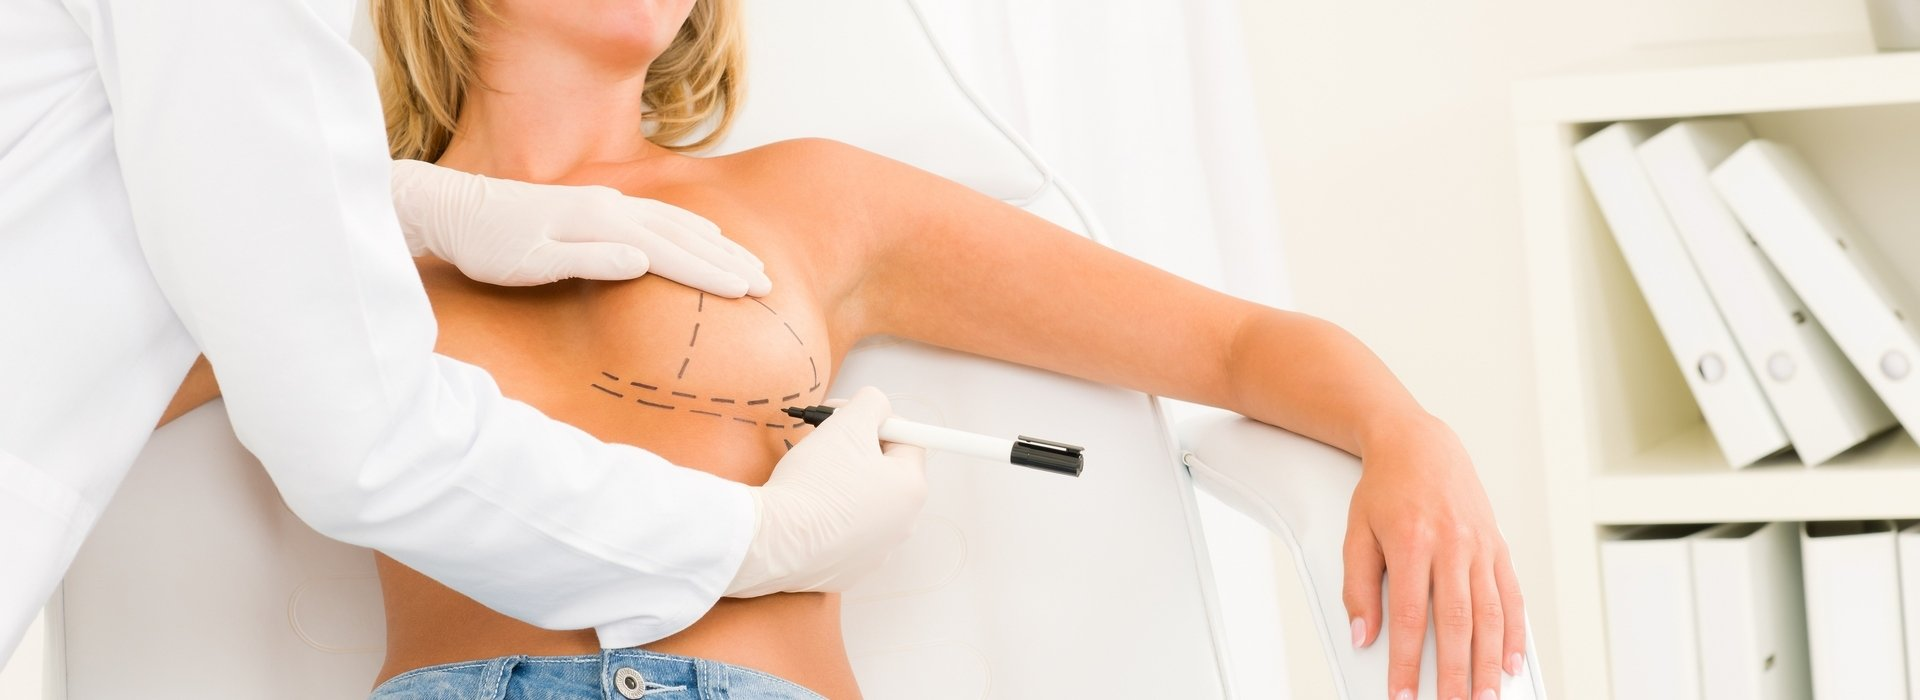 Breast cosmetic treatments in Budapest  Budapest breast plastic surgery